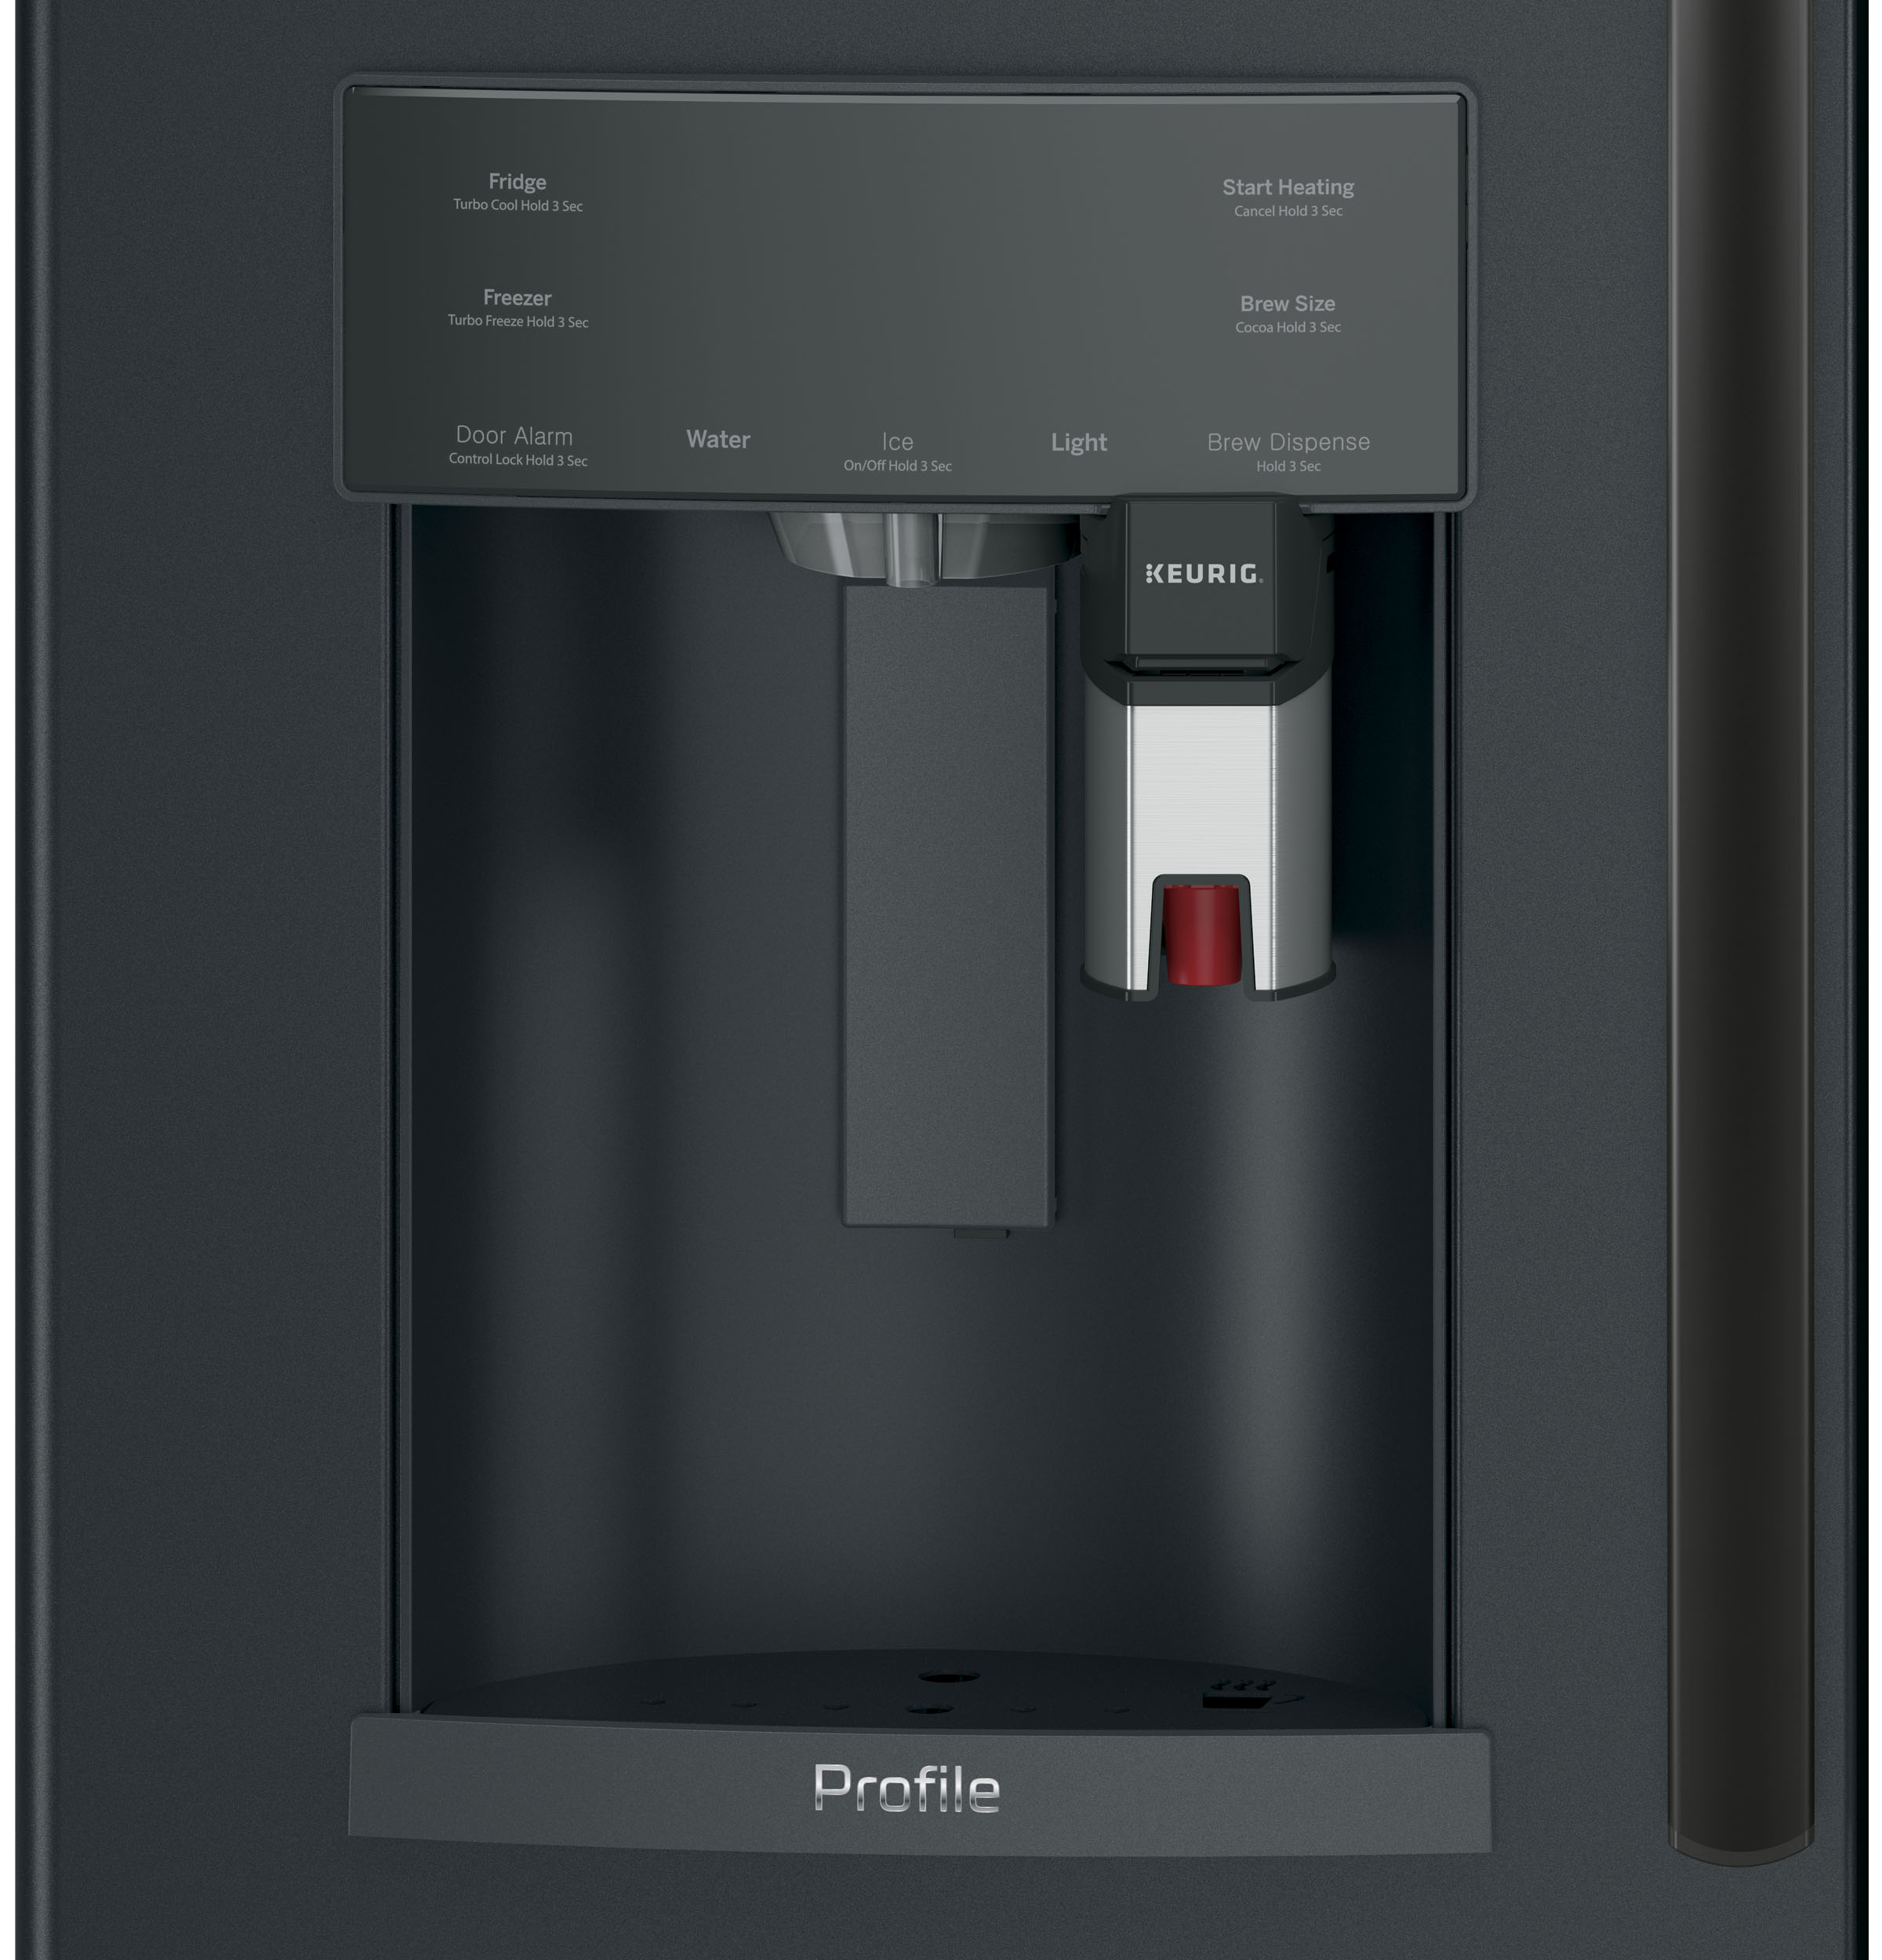 Model: PYE22PELDS | GE Profile™ Series ENERGY STAR® 22.2 Cu. Ft. Counter-Depth French-Door Refrigerator with Keurig® K-Cup® Brewing System